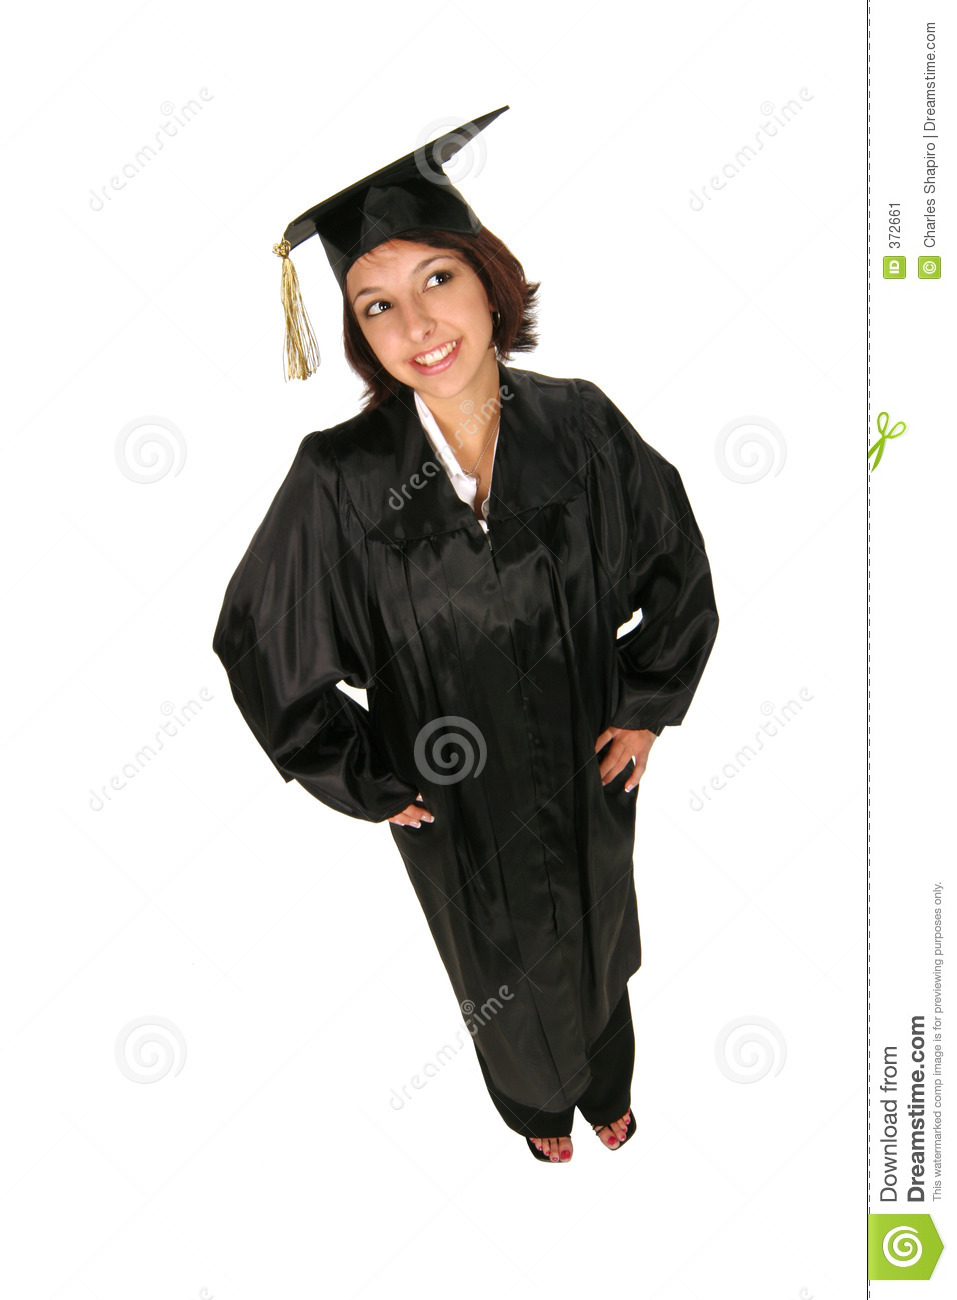 Girl In Cap And Gown Stock Image - Image: 372661